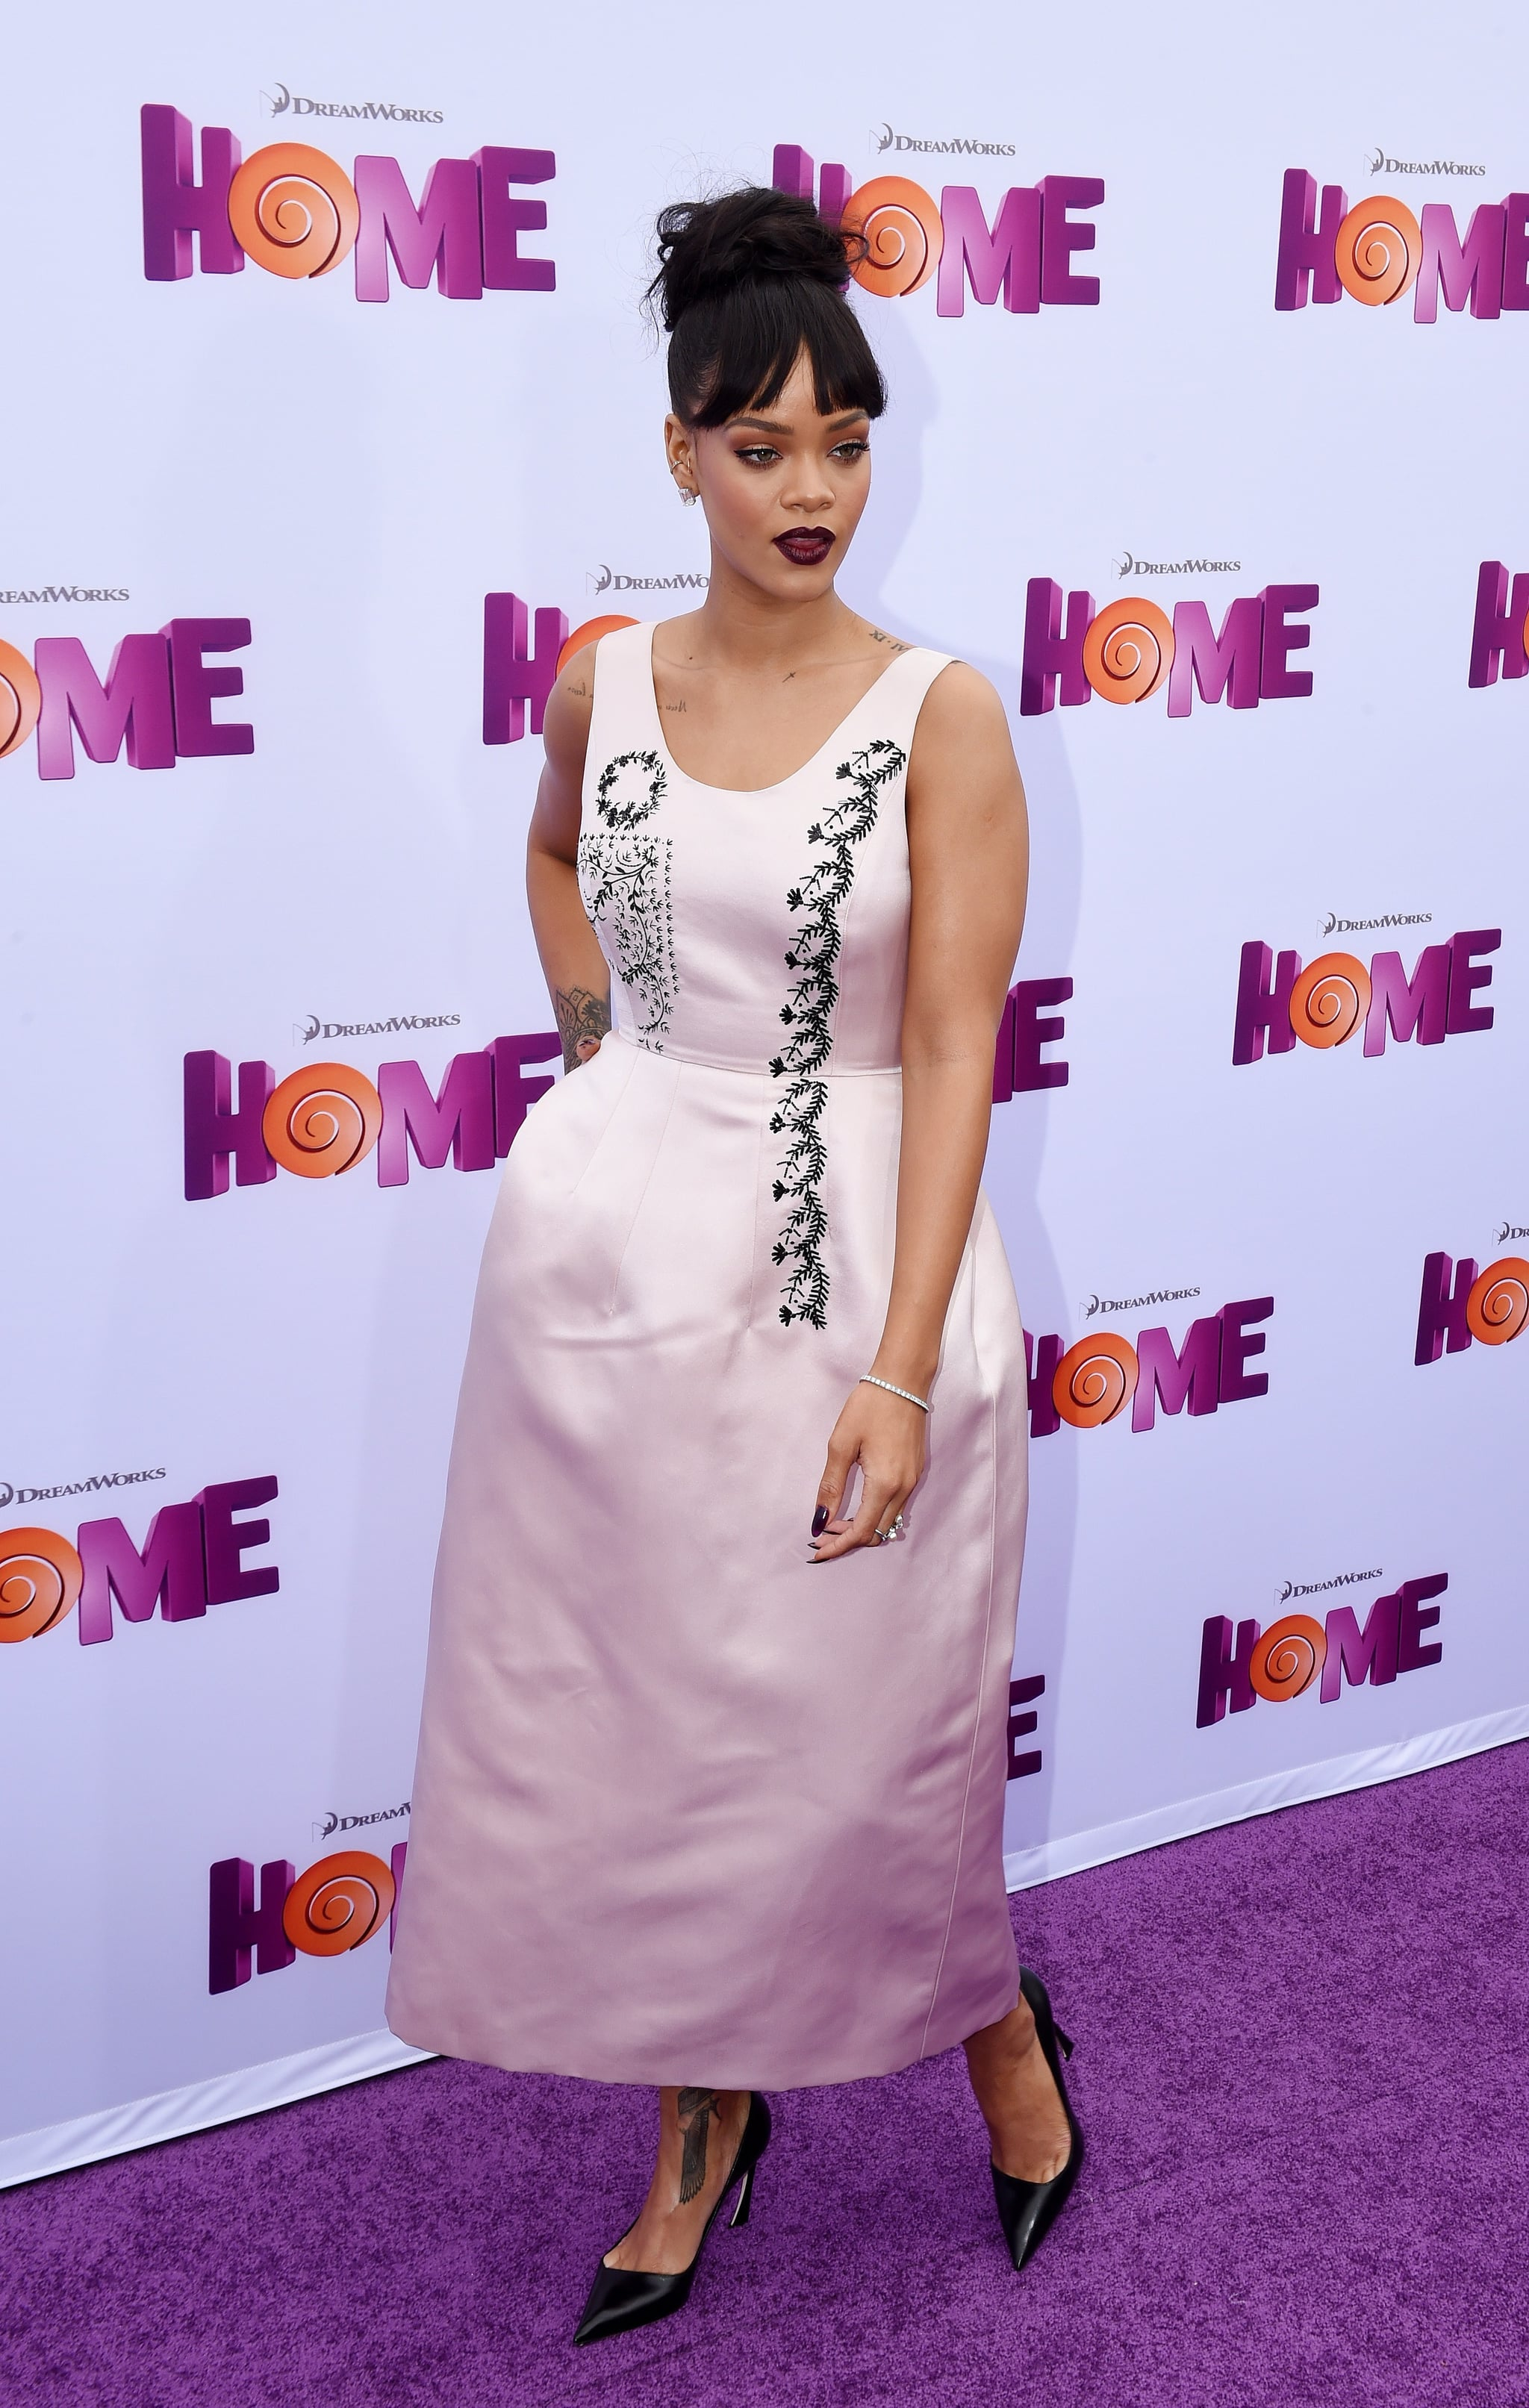 Rihanna In Dior At The Home Premiere 16 Breathtaking Dior Looks You Can Thank Raf Simons For Popsugar Fashion Photo 10